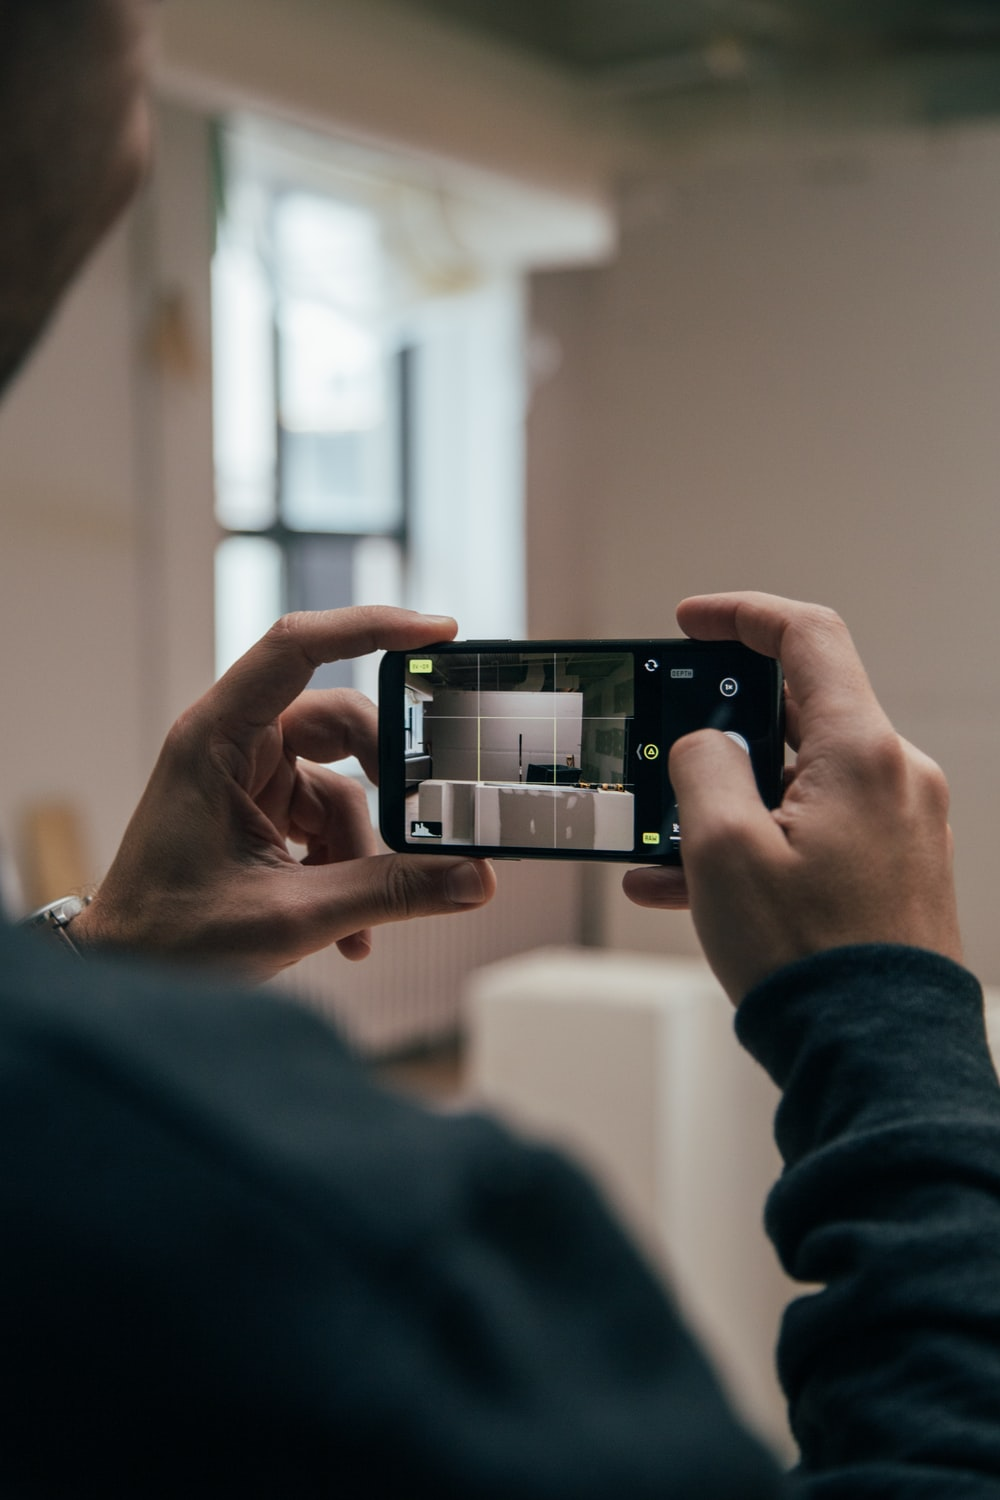 person using smartphone and capturing images